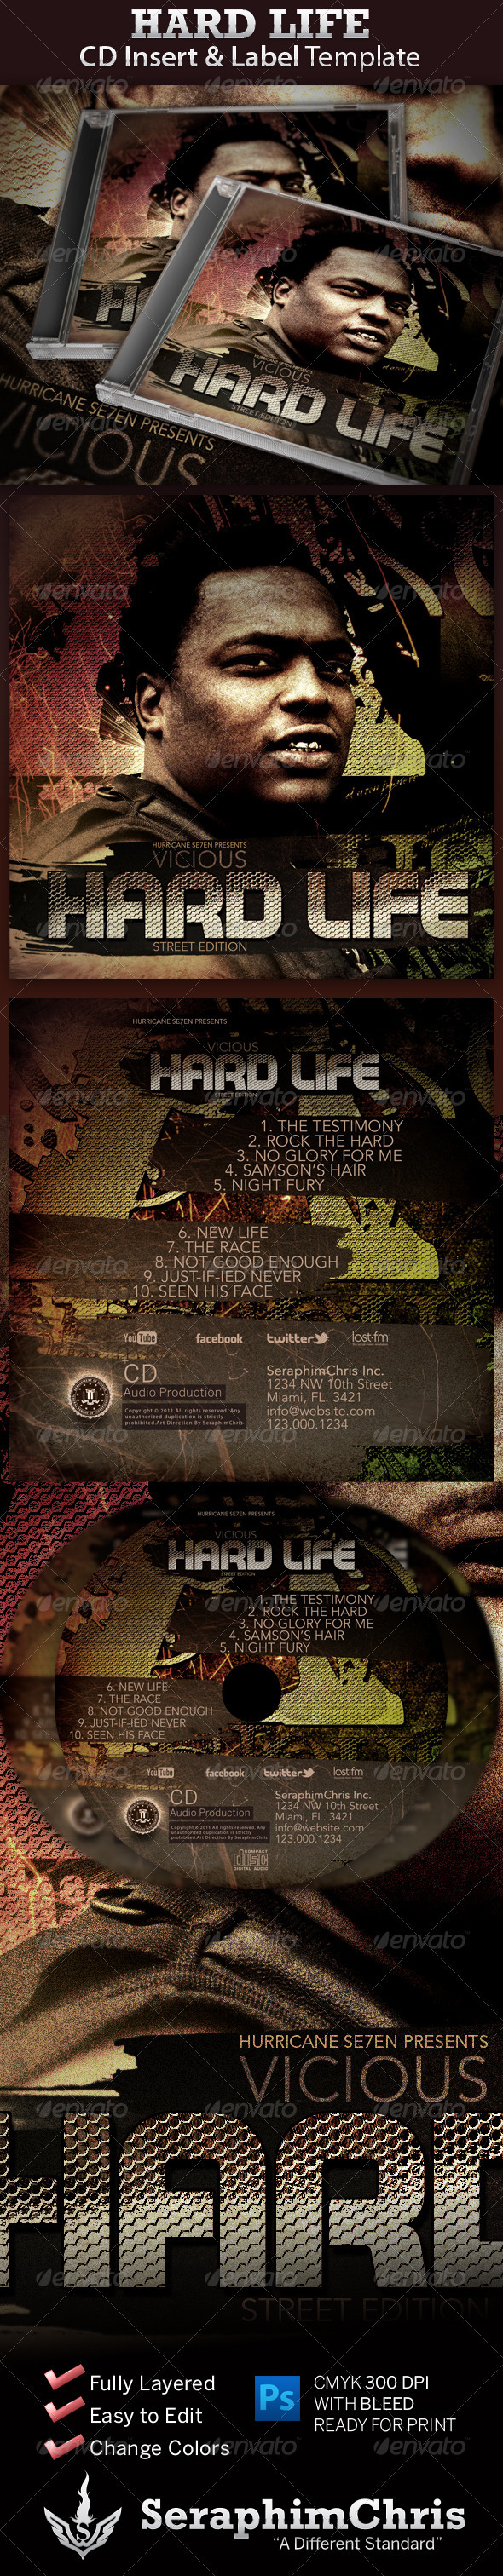 Graphic River Hard Life CD Insert and Label Print Templates -  CD & DVD artwork 726925